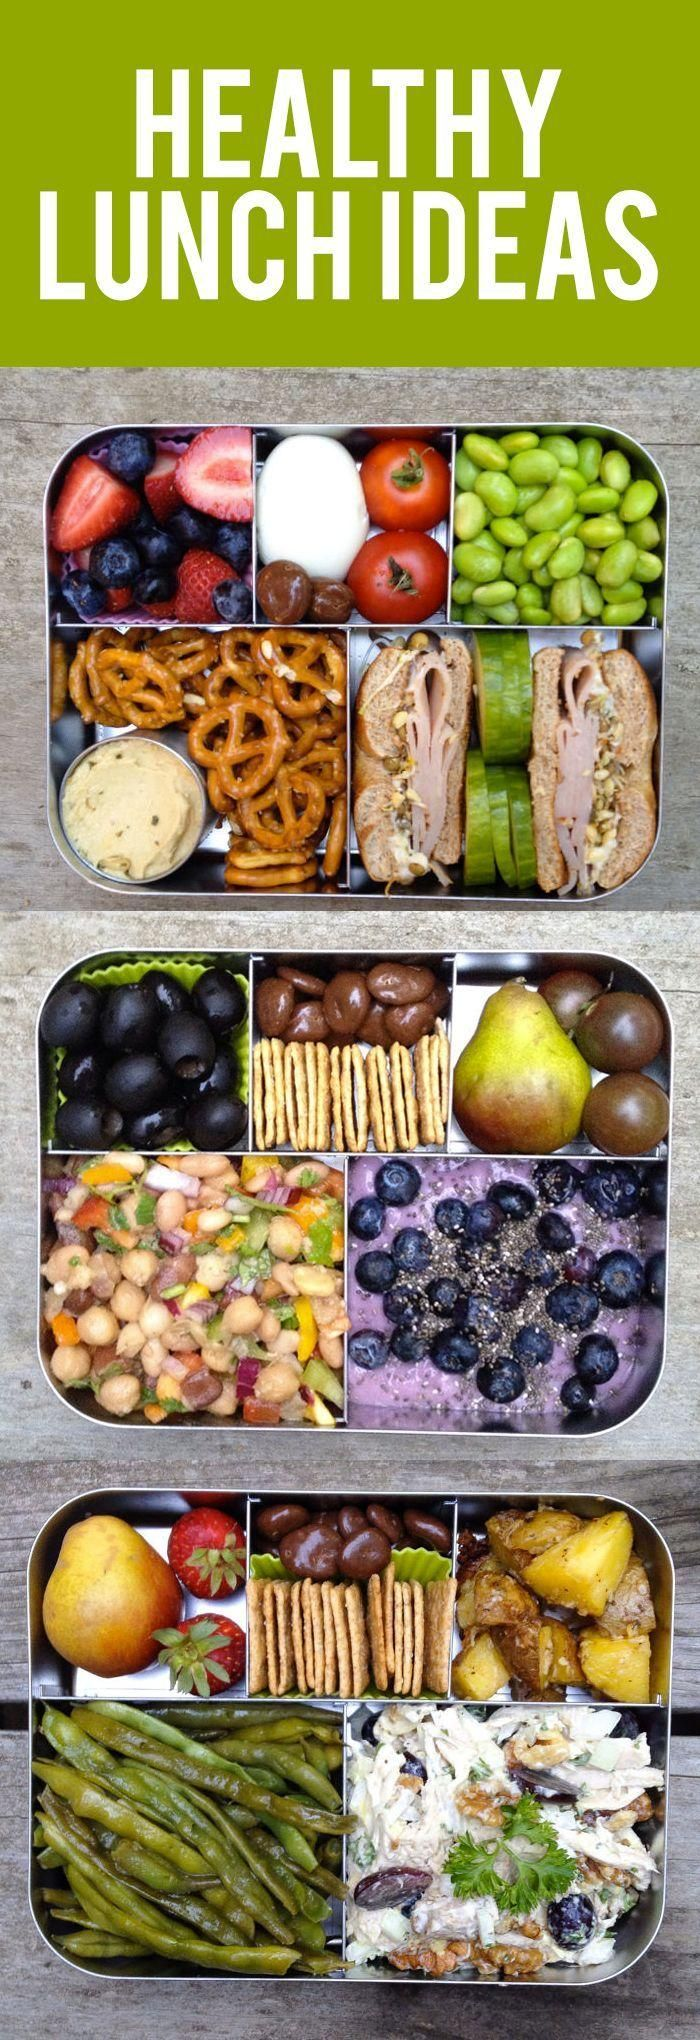 Need some ideas for healthy lunches  Look no further  Tons of healthy  easy  and quick lunch ideas with photos